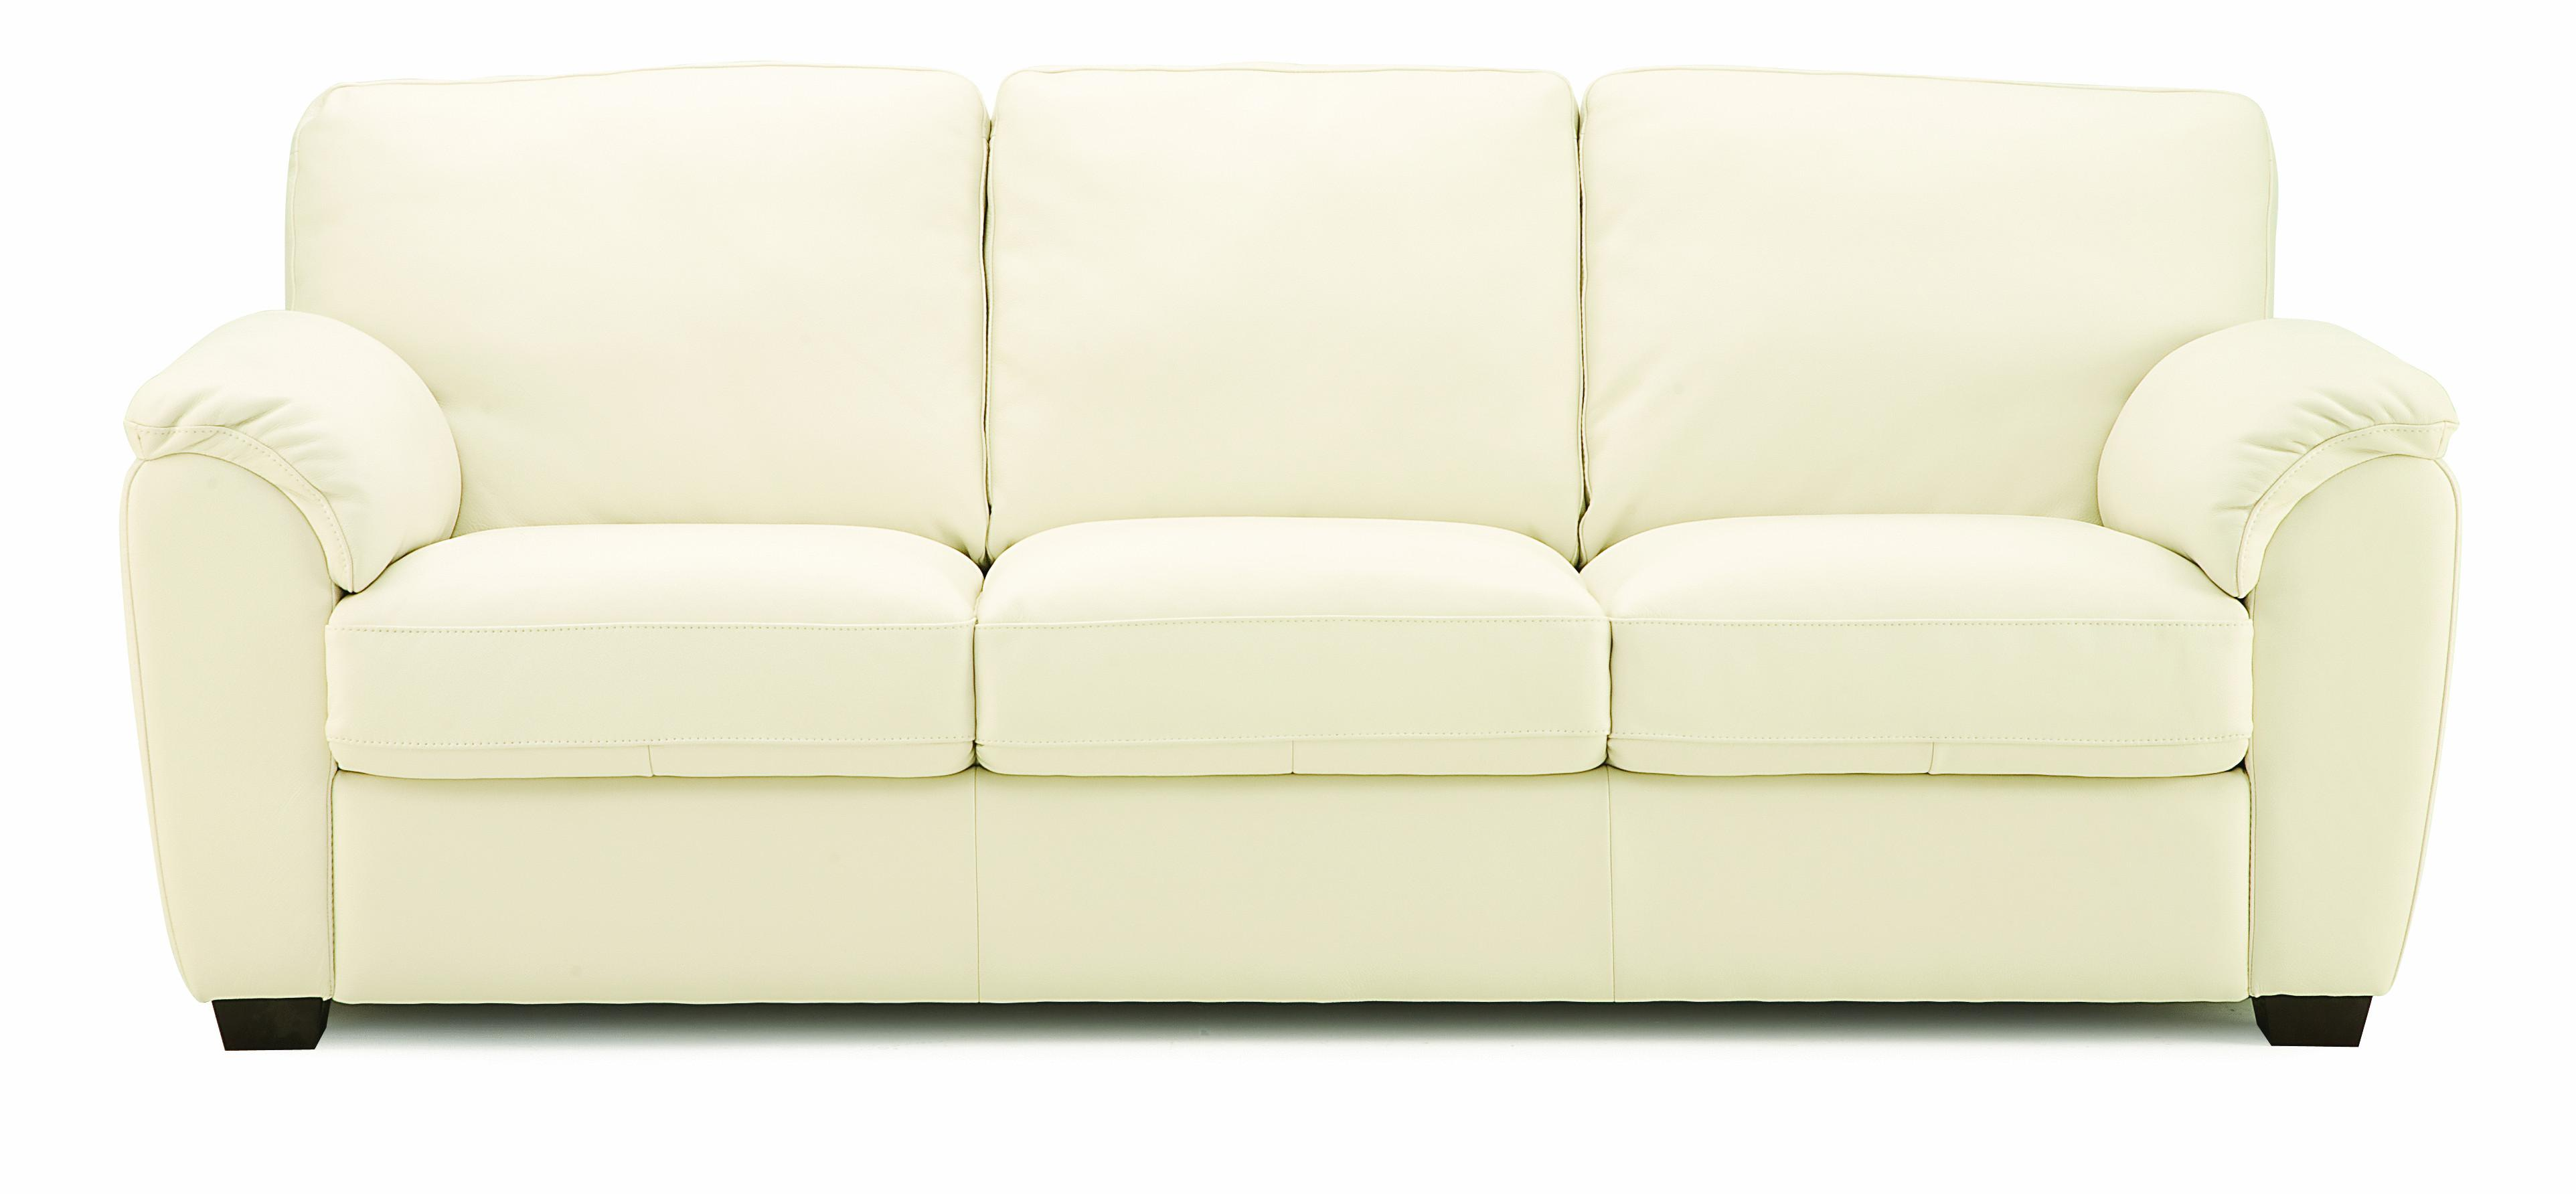 palliser stationary sofas gamma leather sofa lanza casual with sloped pillow arms